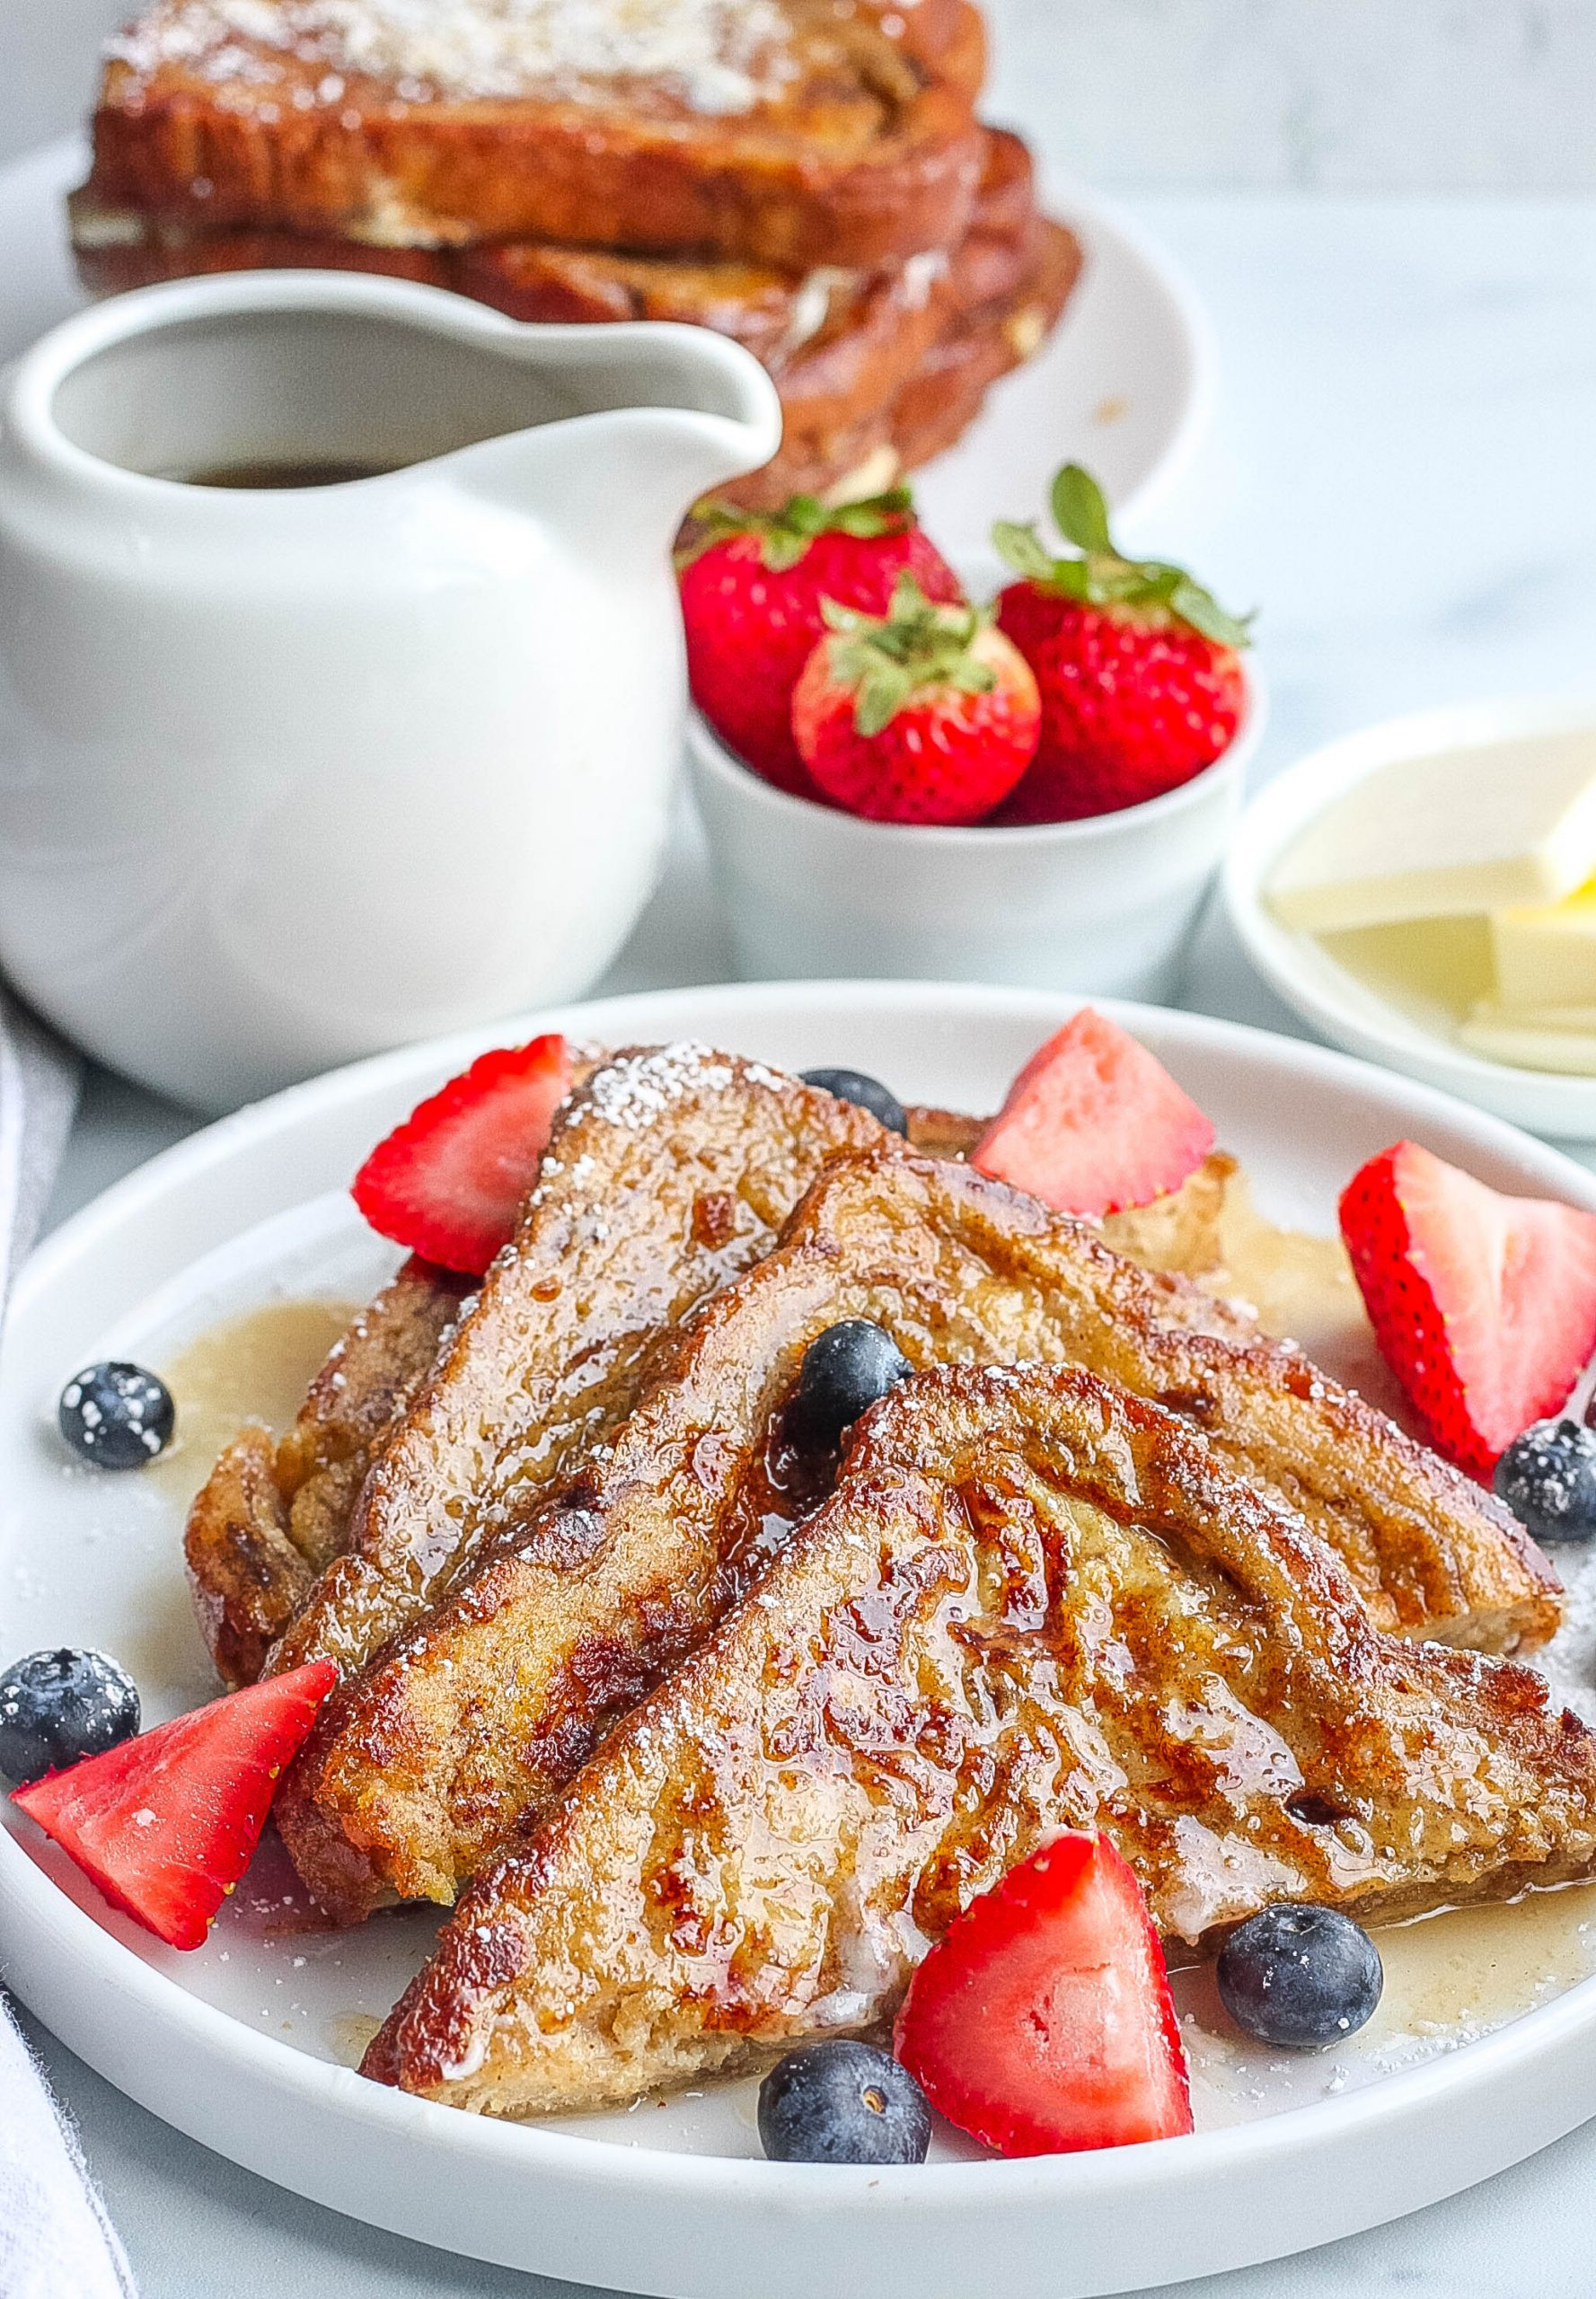 plate of french toast with syrup and berries